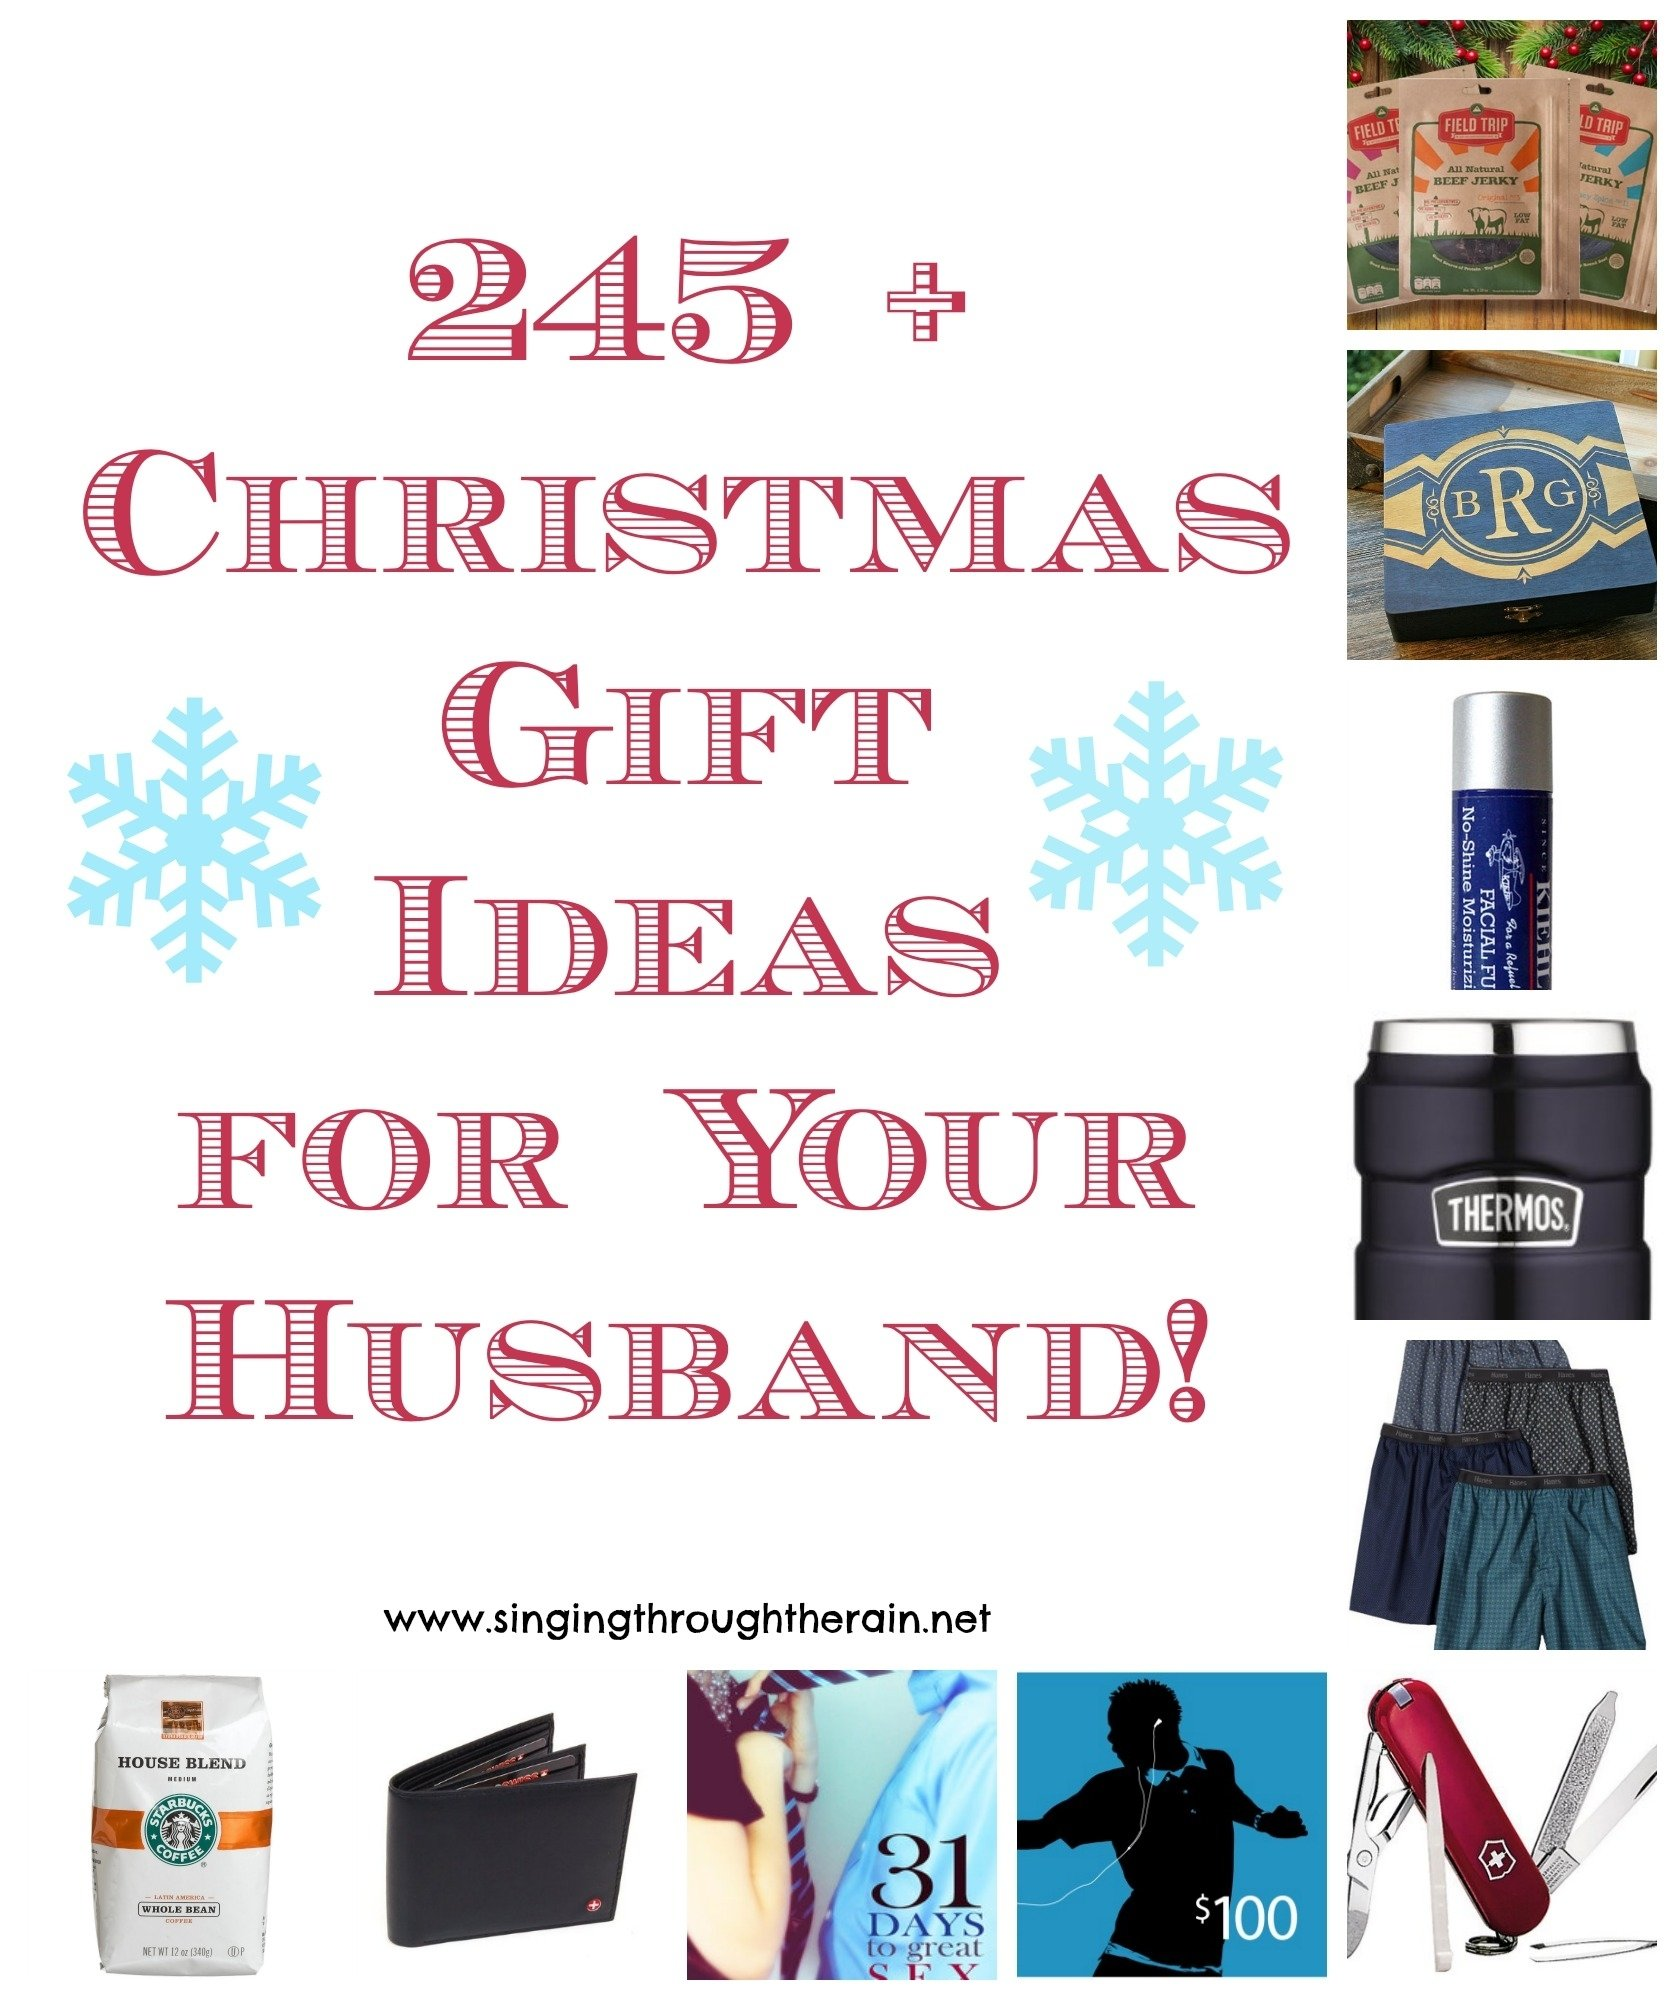 10 Elegant Christmas Gift Ideas For Men 2013 245 christmas gift ideas for your husband singing through the rain 3